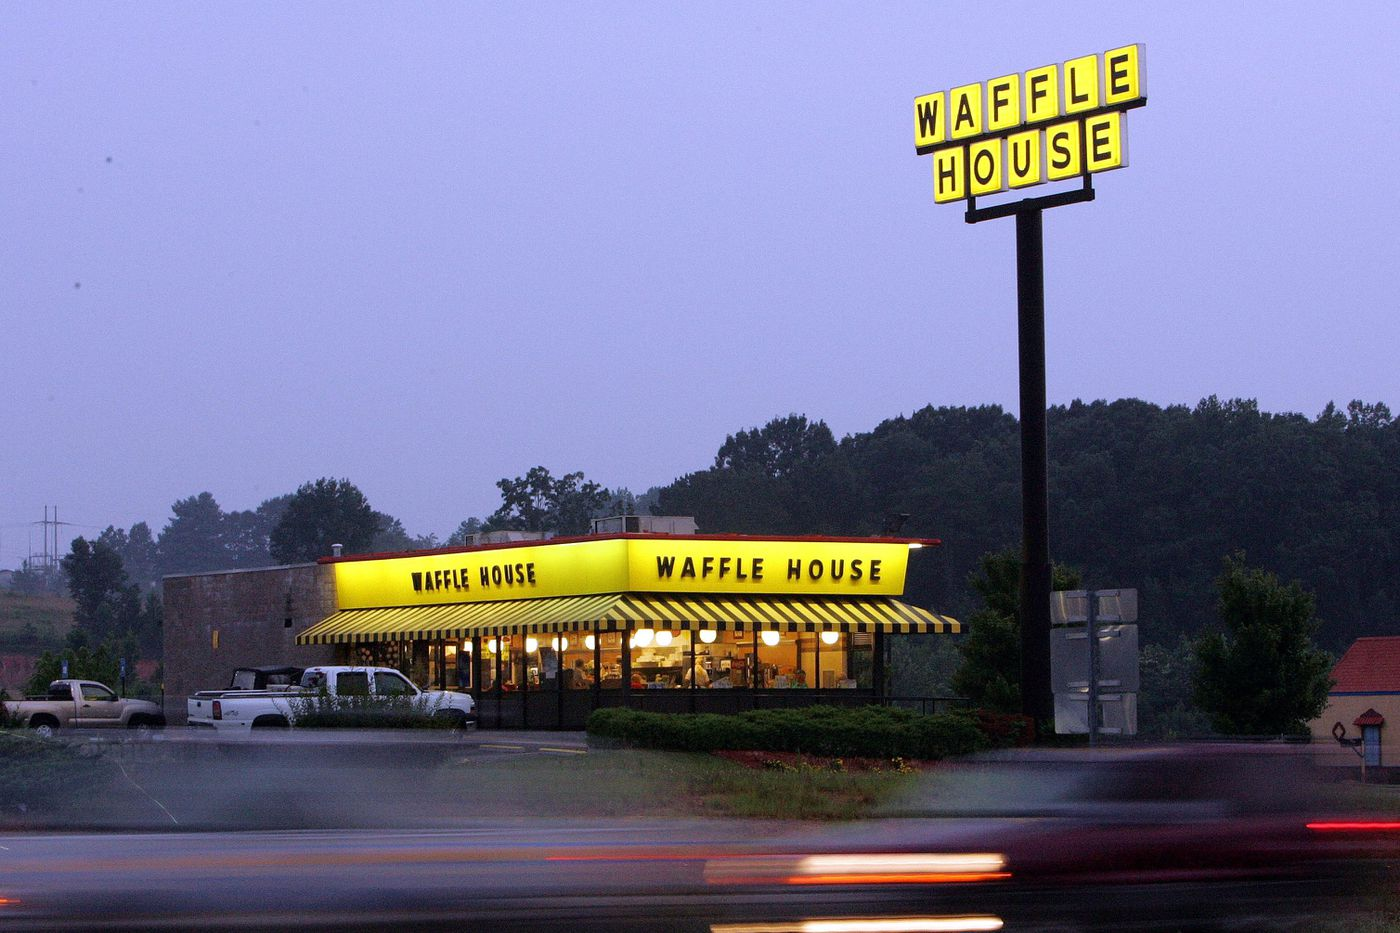 Yes, you should care about the Waffle House index